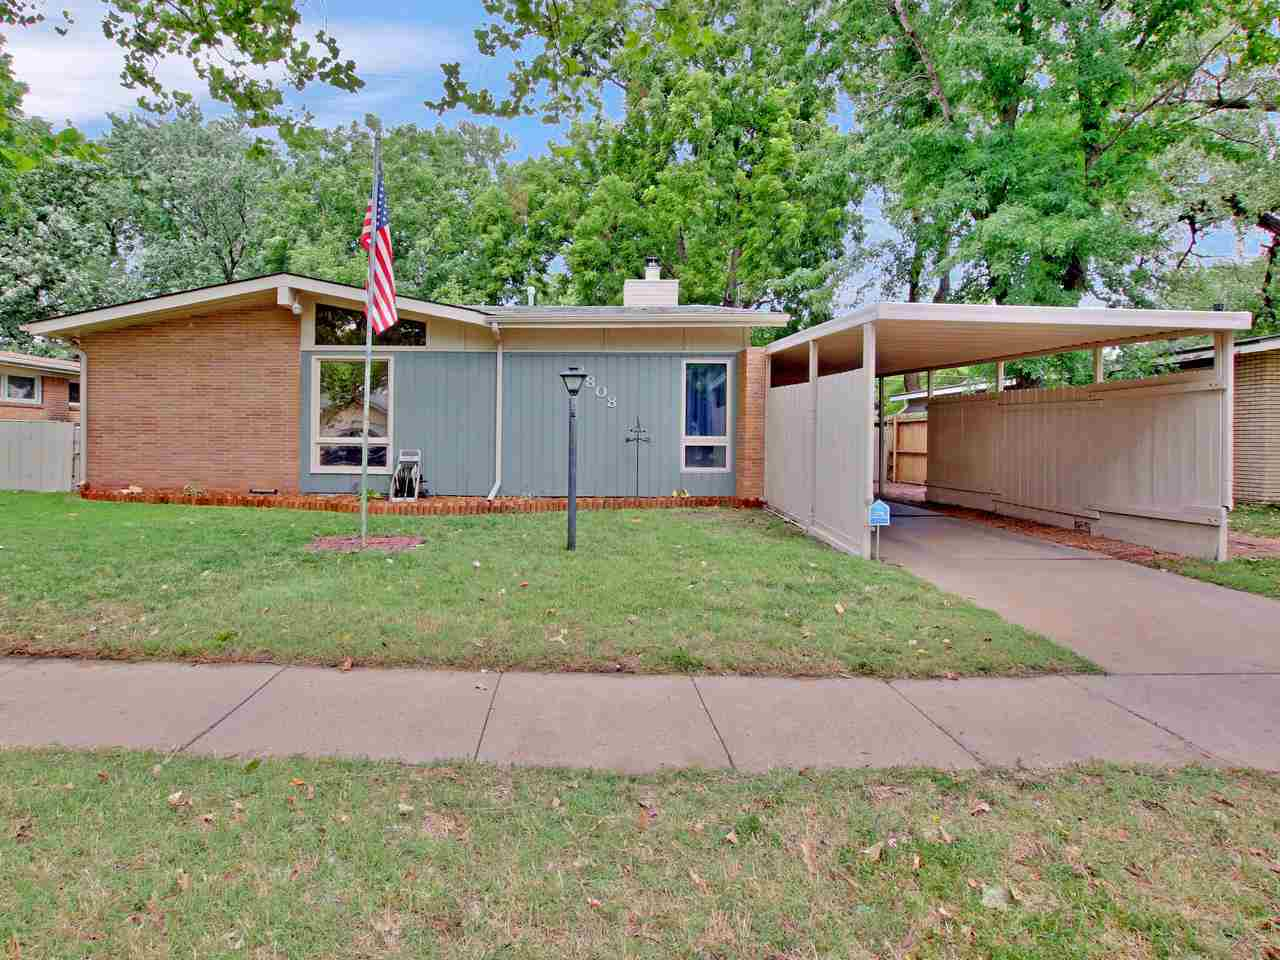 CHARMING MID-CENTURY RANCH THAT'S FULL OF CHARACTER!  This updated 3 bedroom, 2 bath home offers 1,5